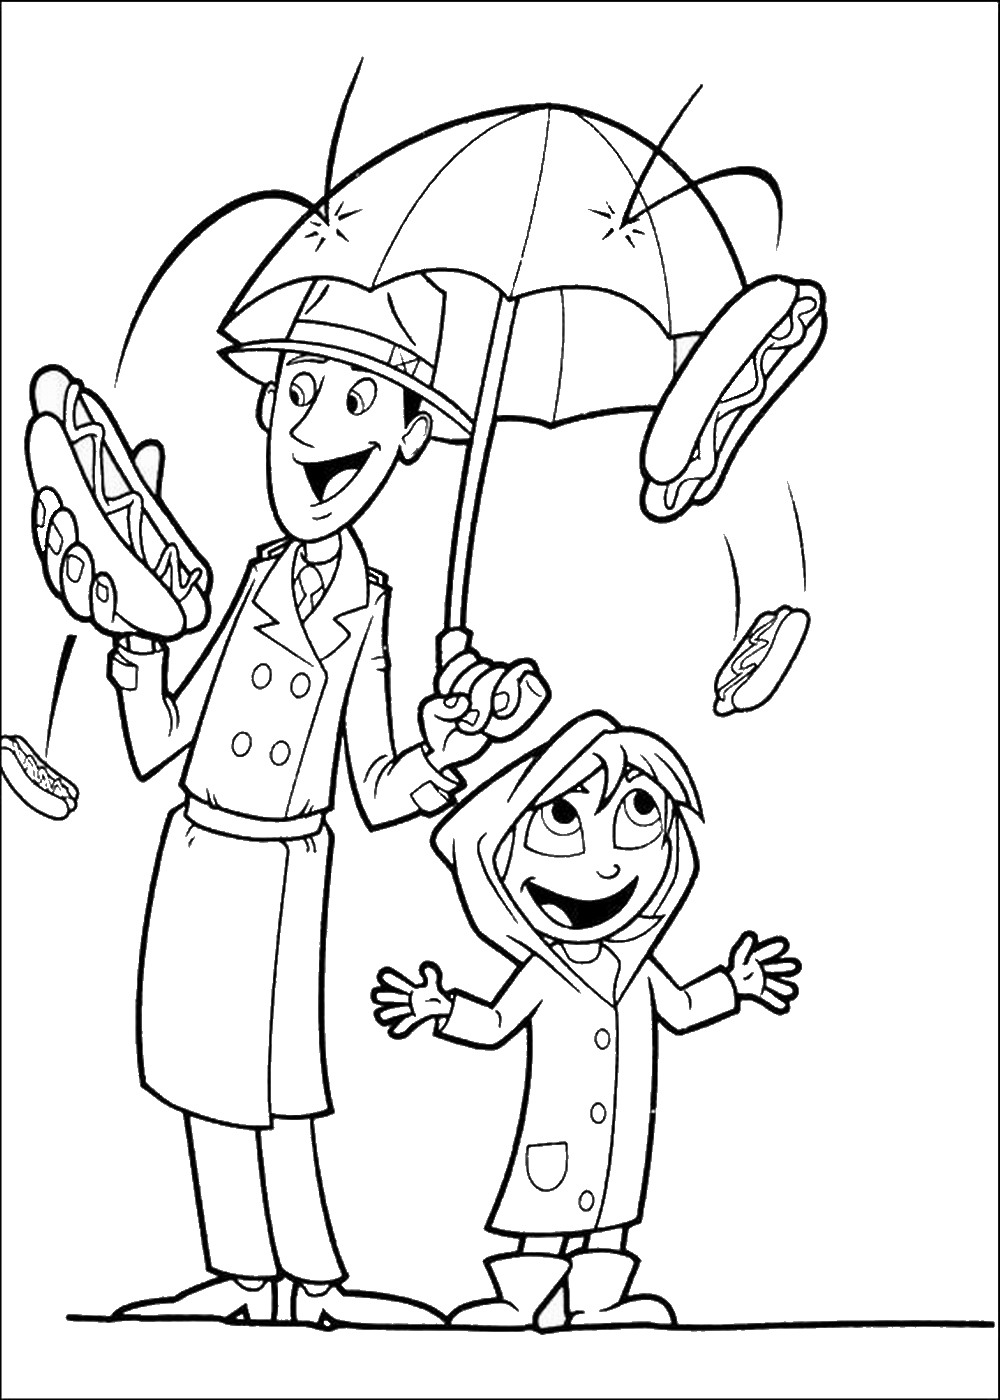 cloudy with a chance of meatballs 2 coloring pages cloudy with a chance of meatballs coloring pages cloudy 2 pages meatballs coloring of a with chance